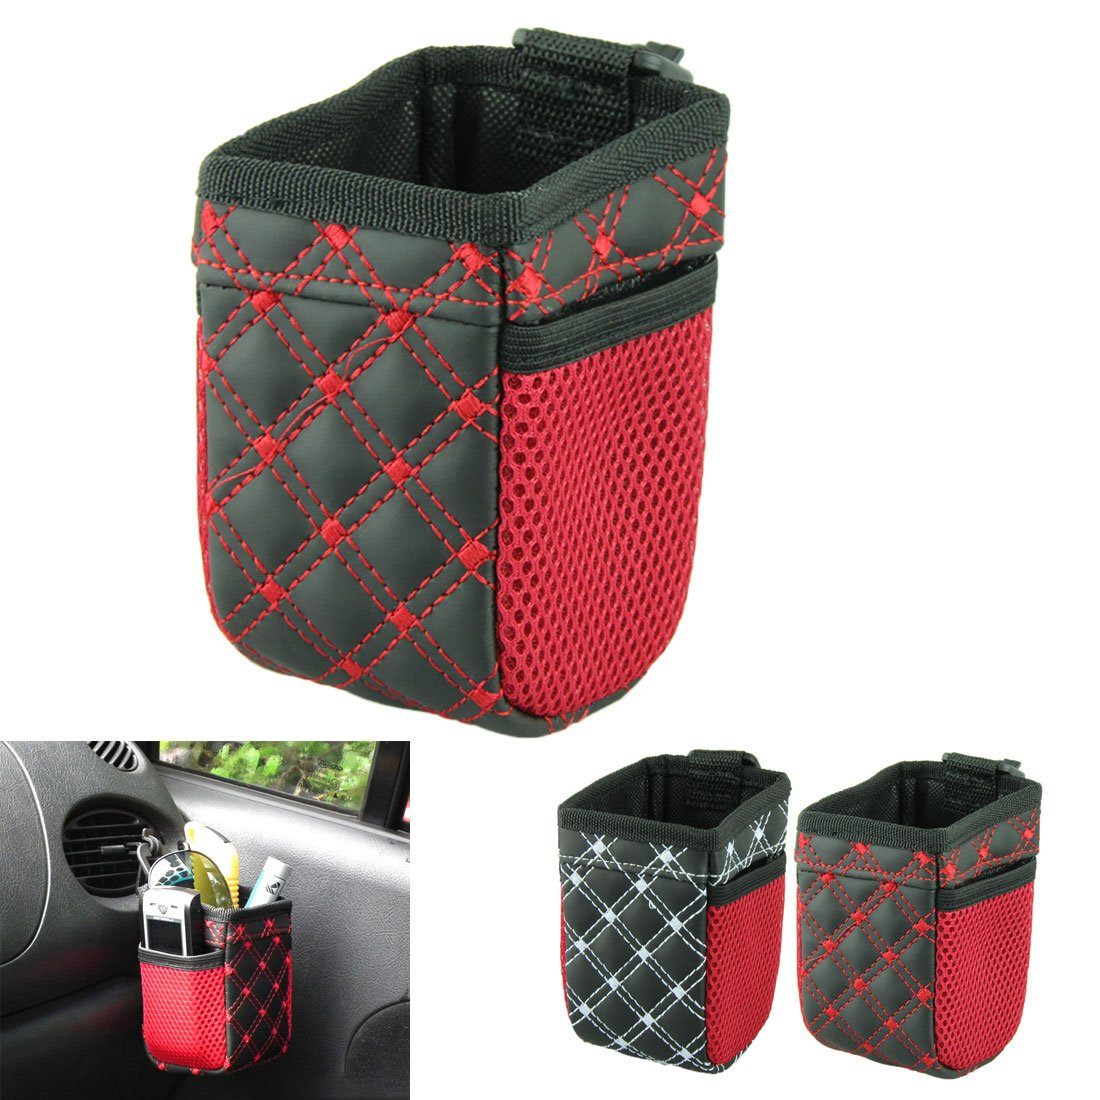 Voberry Bag of Car Air Outlet Mobile Phone Bag Carriage Bag Seat Back Organizer Storage Bag Car Pocket Storage Organizer (Red)